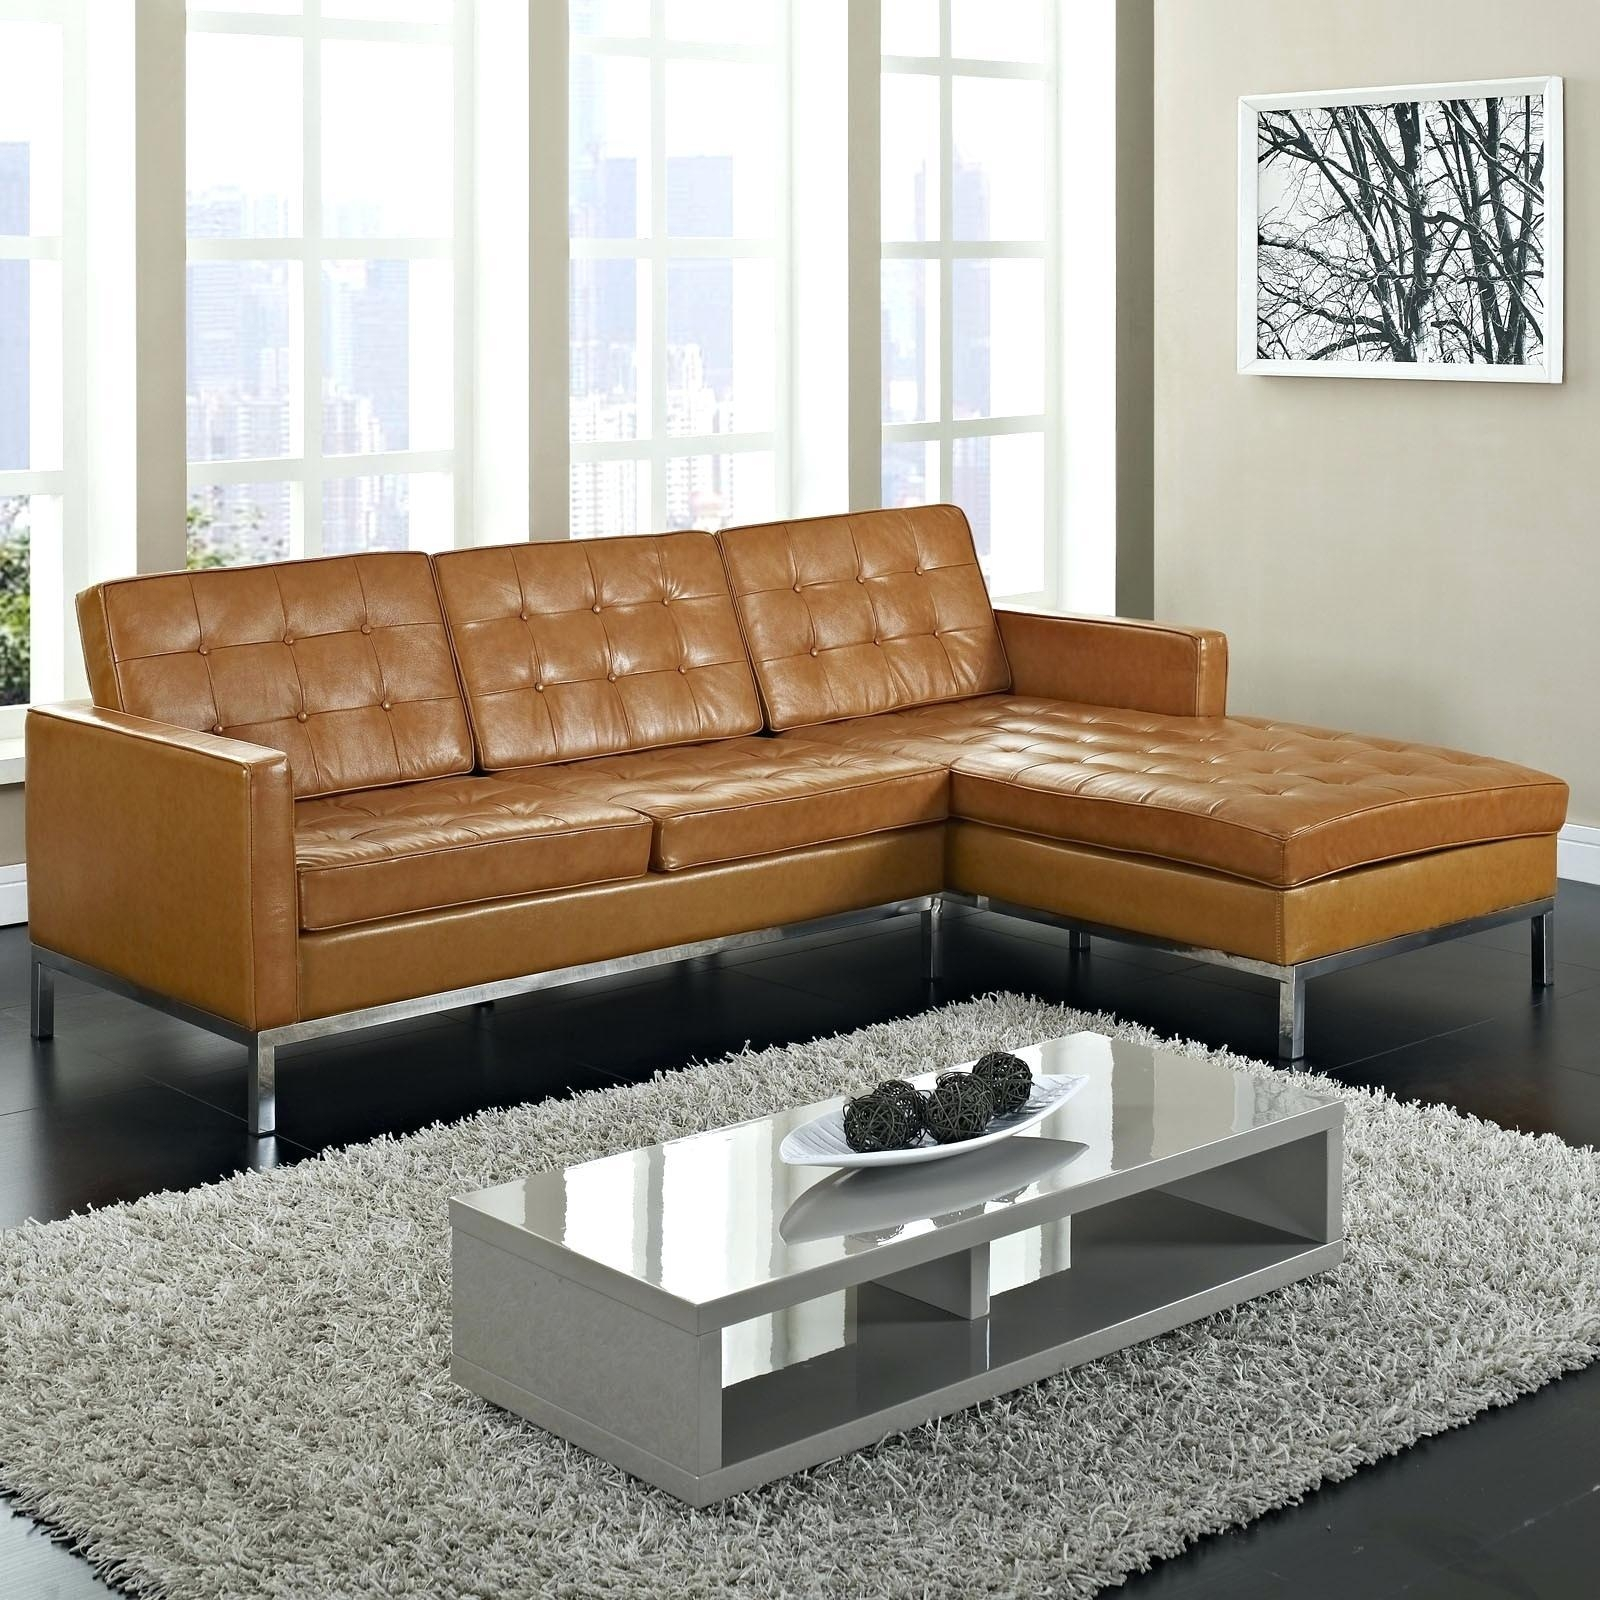 camel colored leather sofas how to fix a sofa bed frame 20 top color ideas